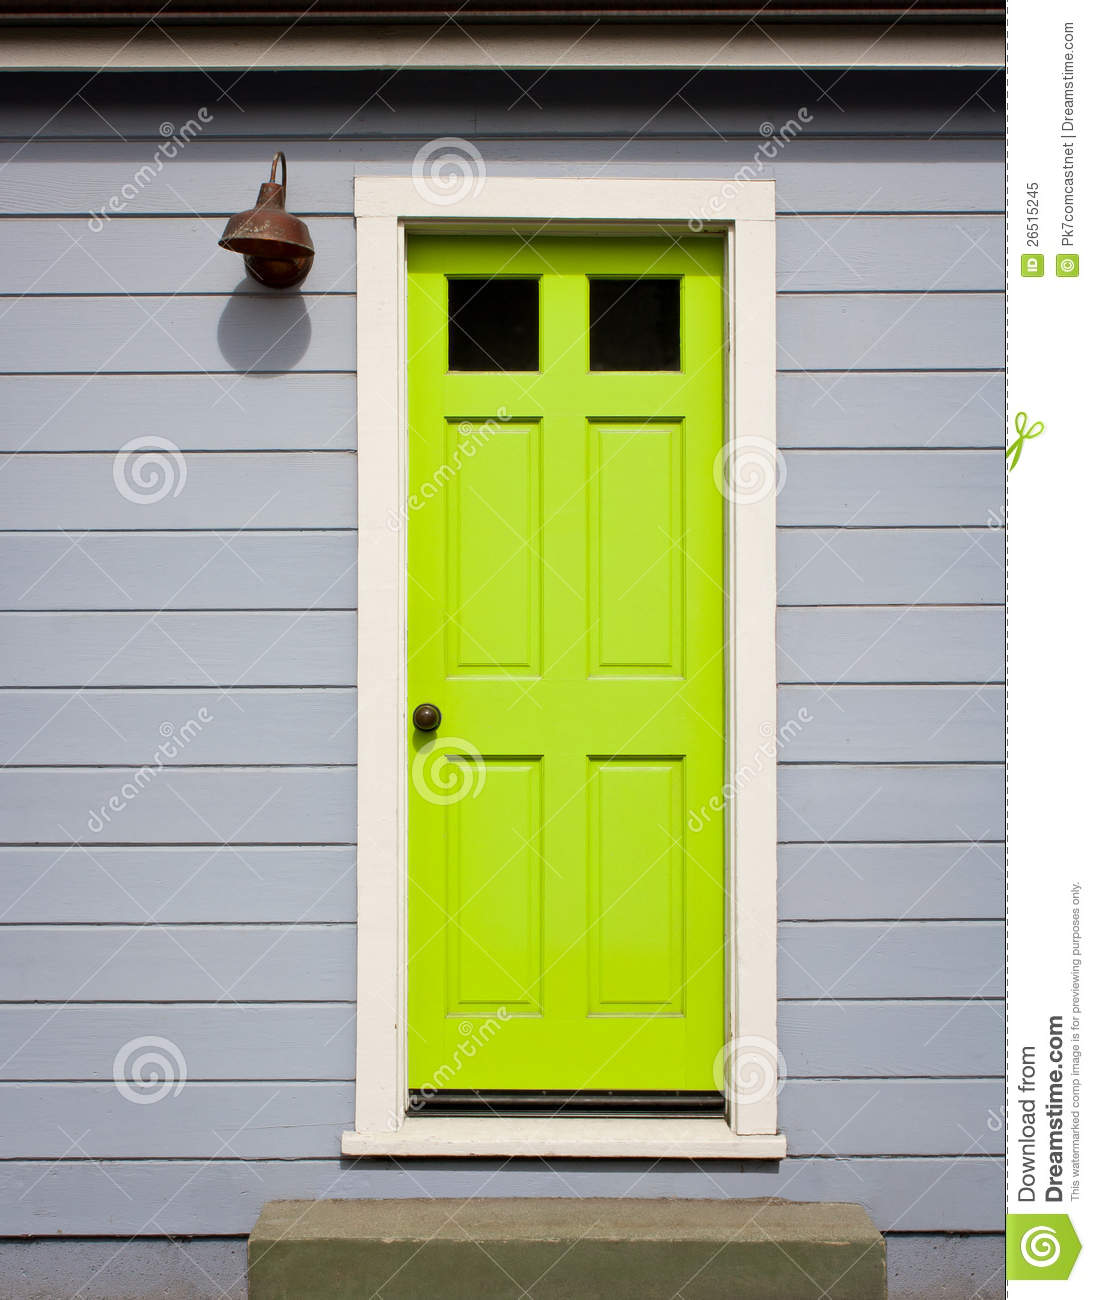 1300 #95B714 Bright Lime Green Door With White Wood Trim In A Light Gray Wood  save image Green Front Doors 47971095